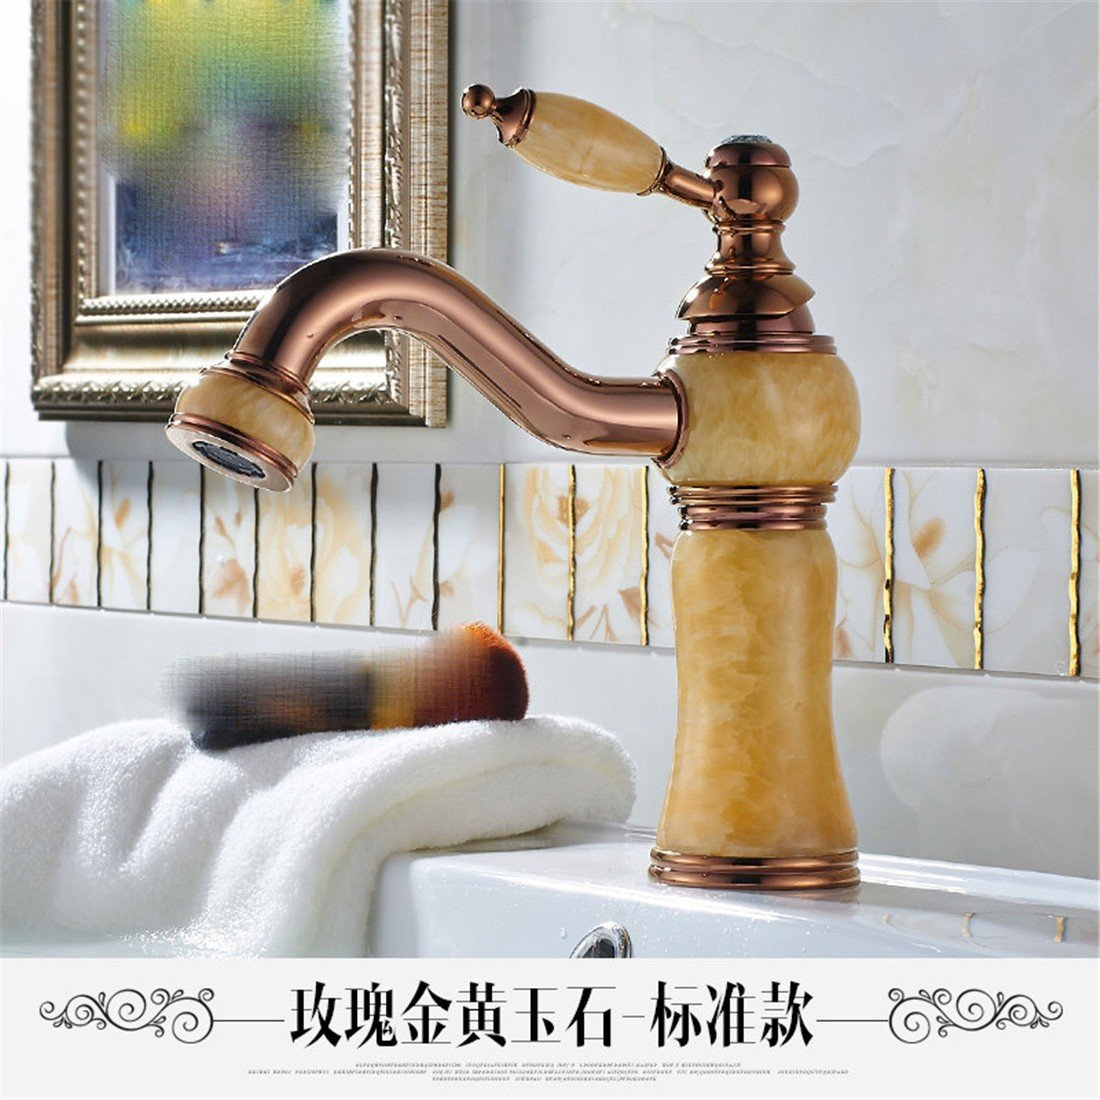 pink gold Topaz 3 Hlluya Professional Sink Mixer Tap Kitchen Faucet The Jade faucet marble washbasins pink gold basin full copper golden basin of hot and cold taps, God light blond white jade